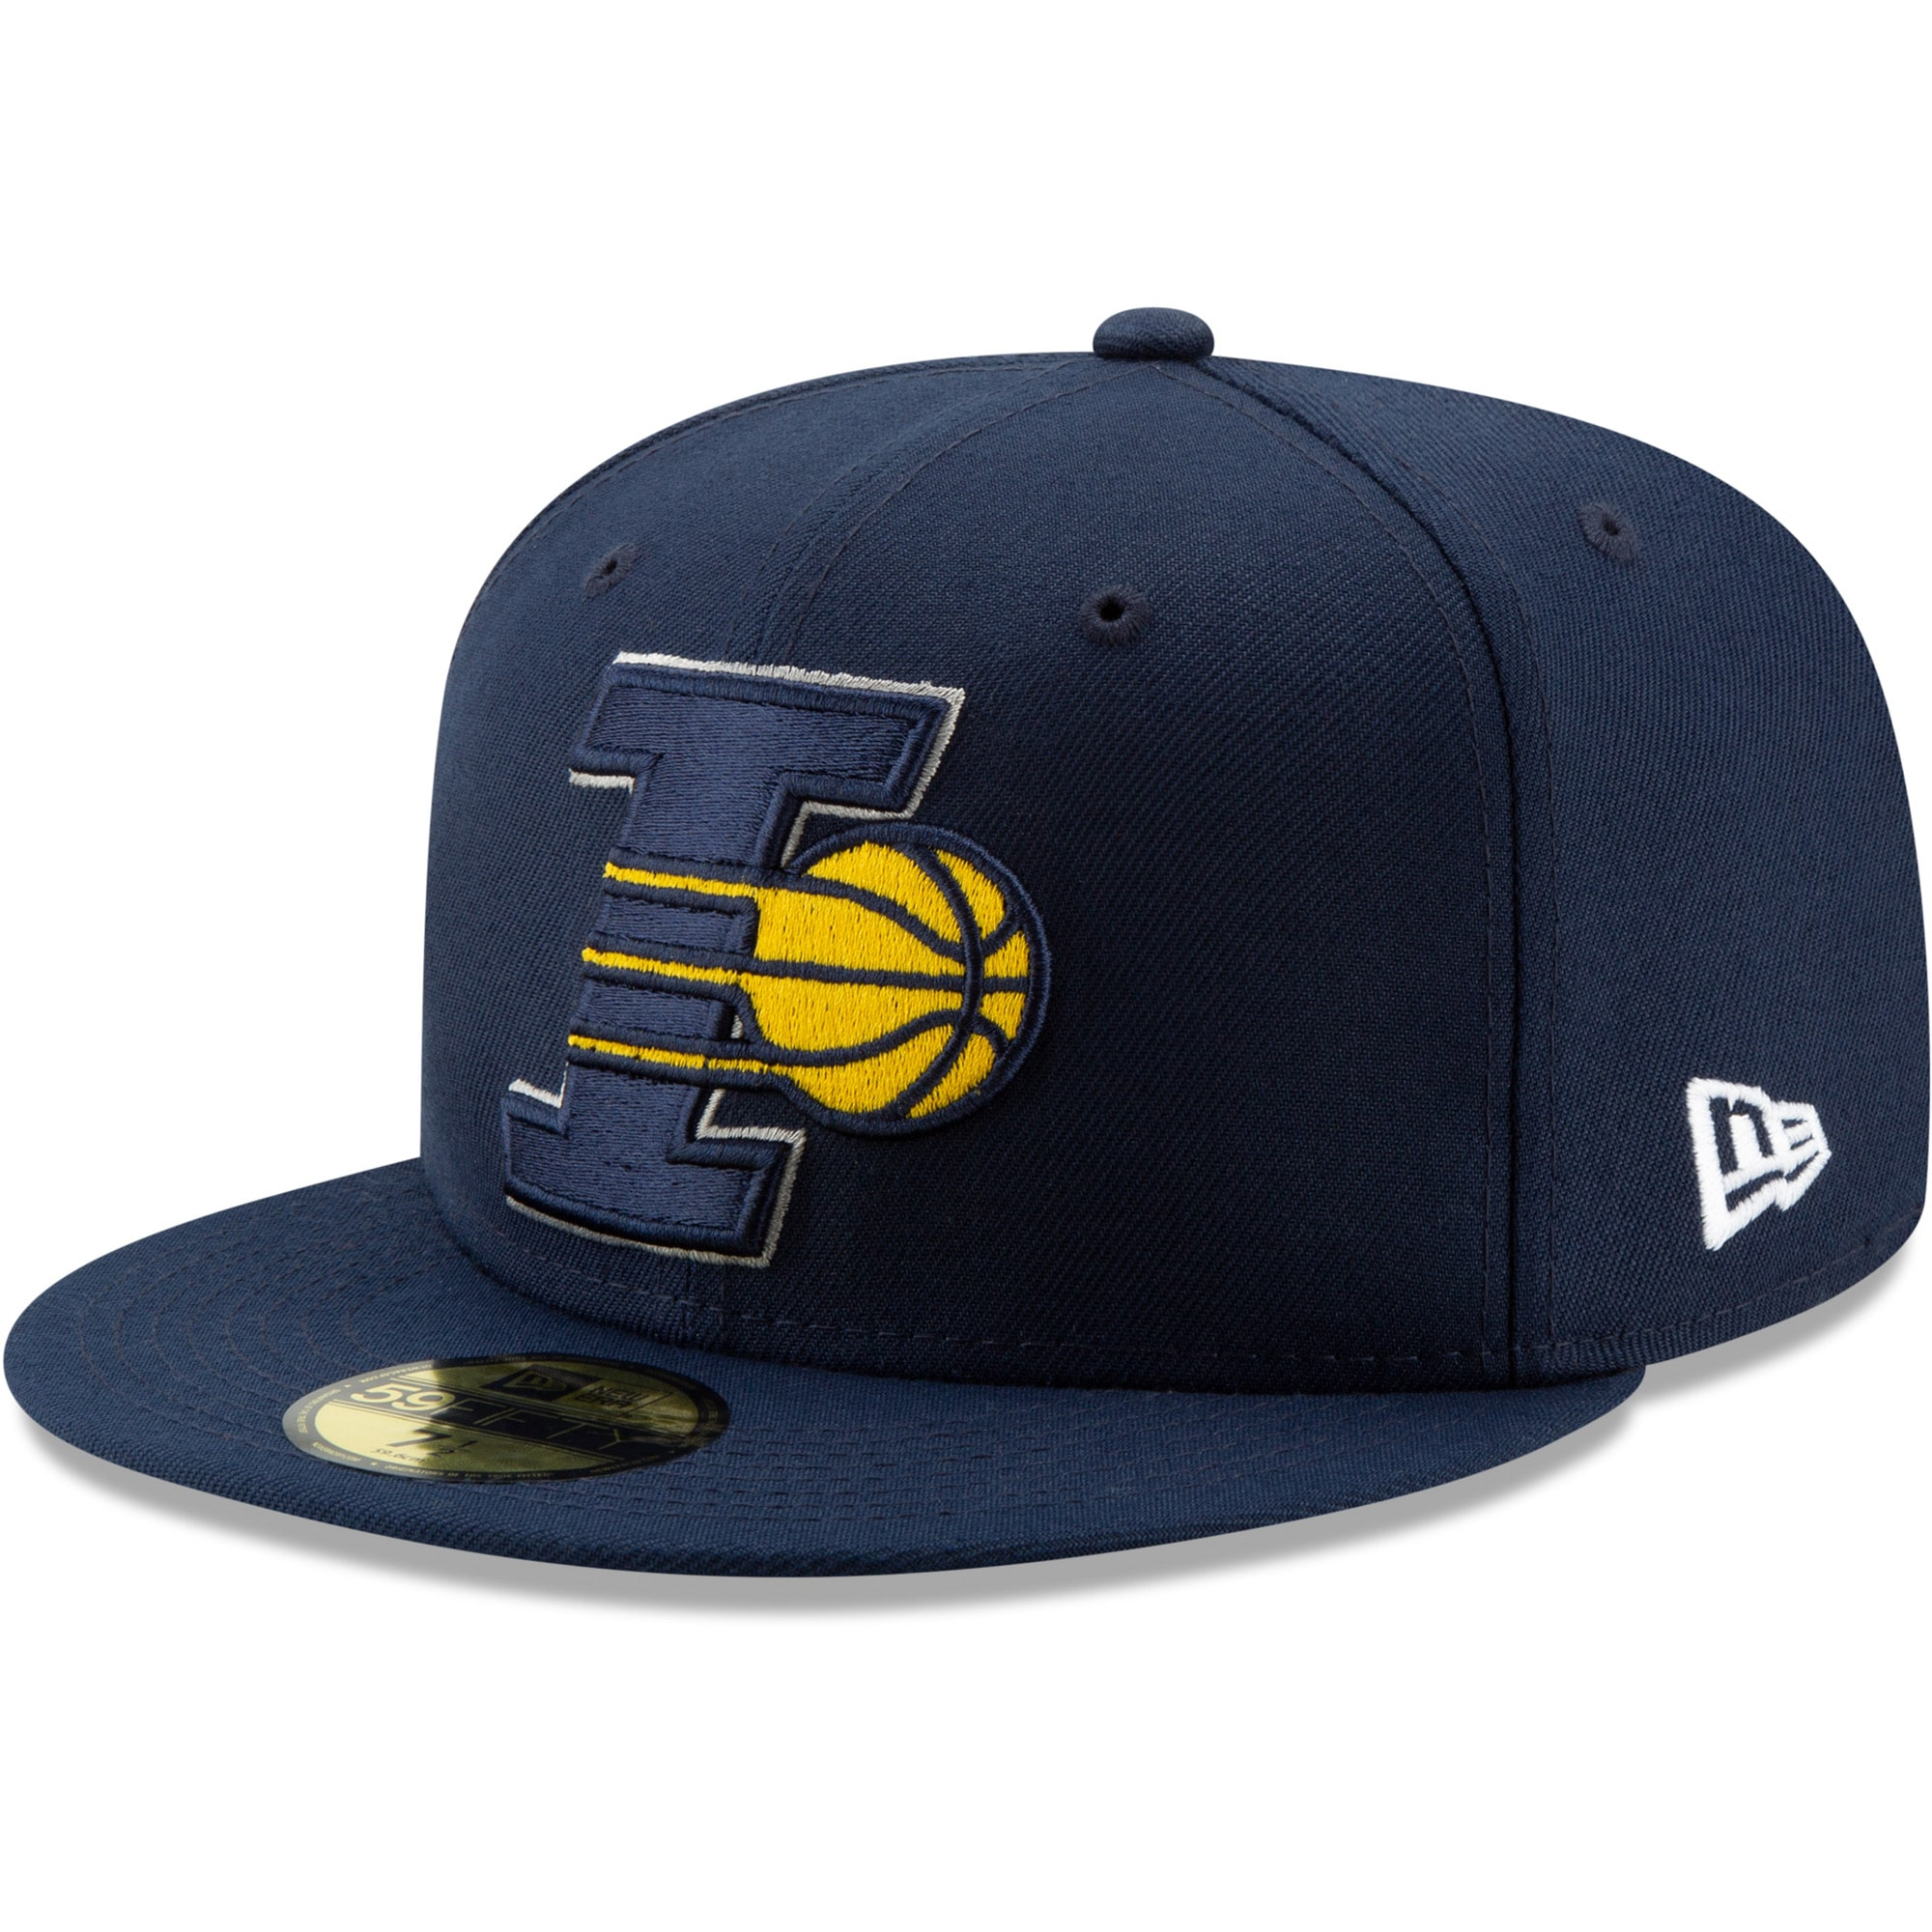 Indiana Pacers New Era Team Logo Back Half Series 59FIFTY Fitted Hat - Navy